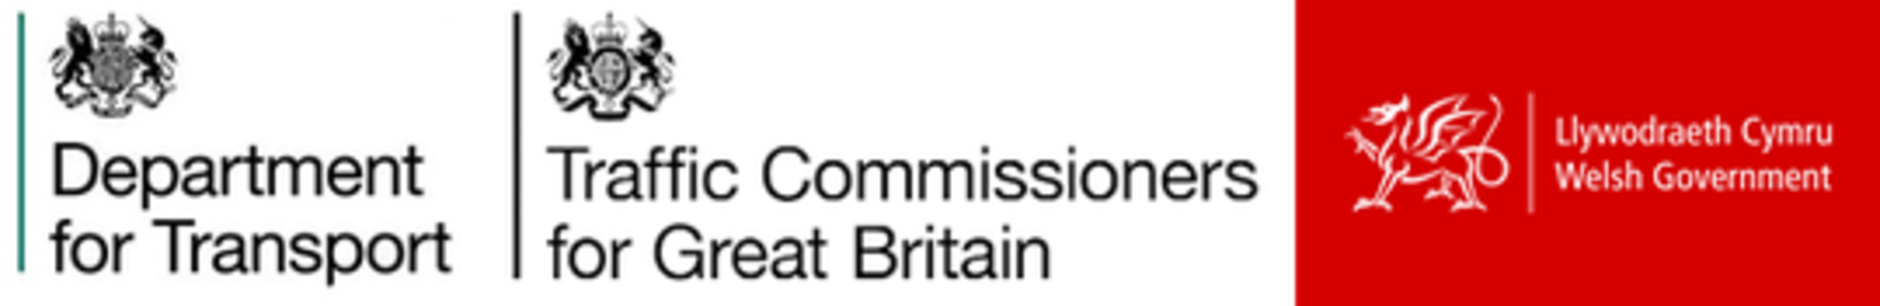 Transport Commission Government Logo